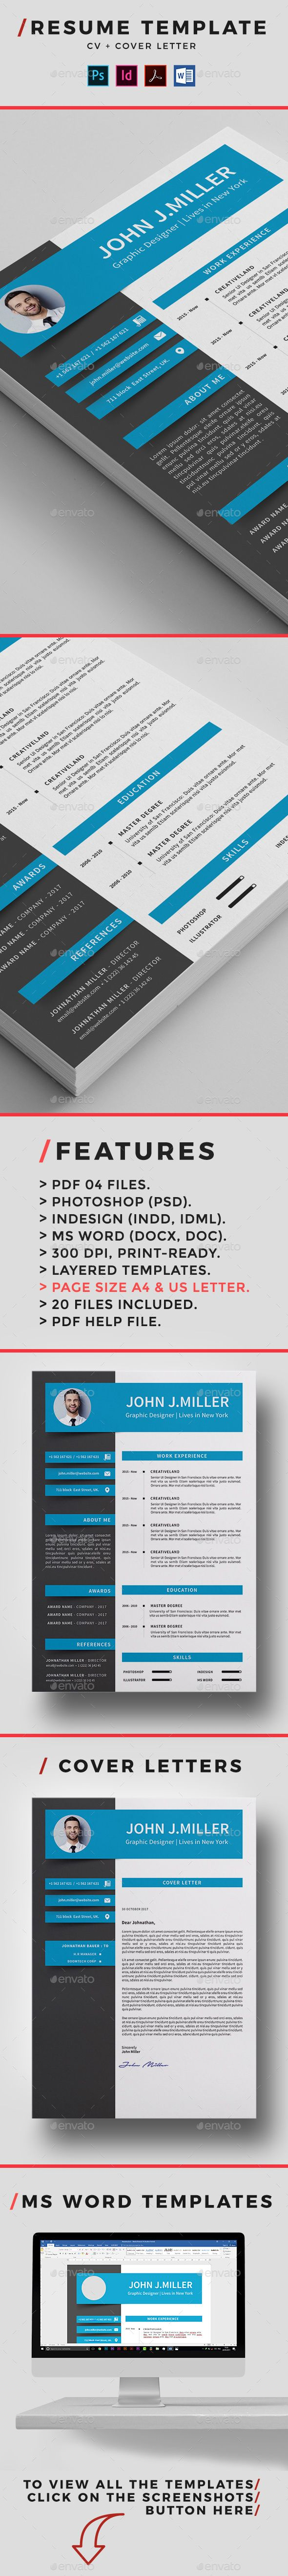 Cv Templates Pdf%0A Resume Template